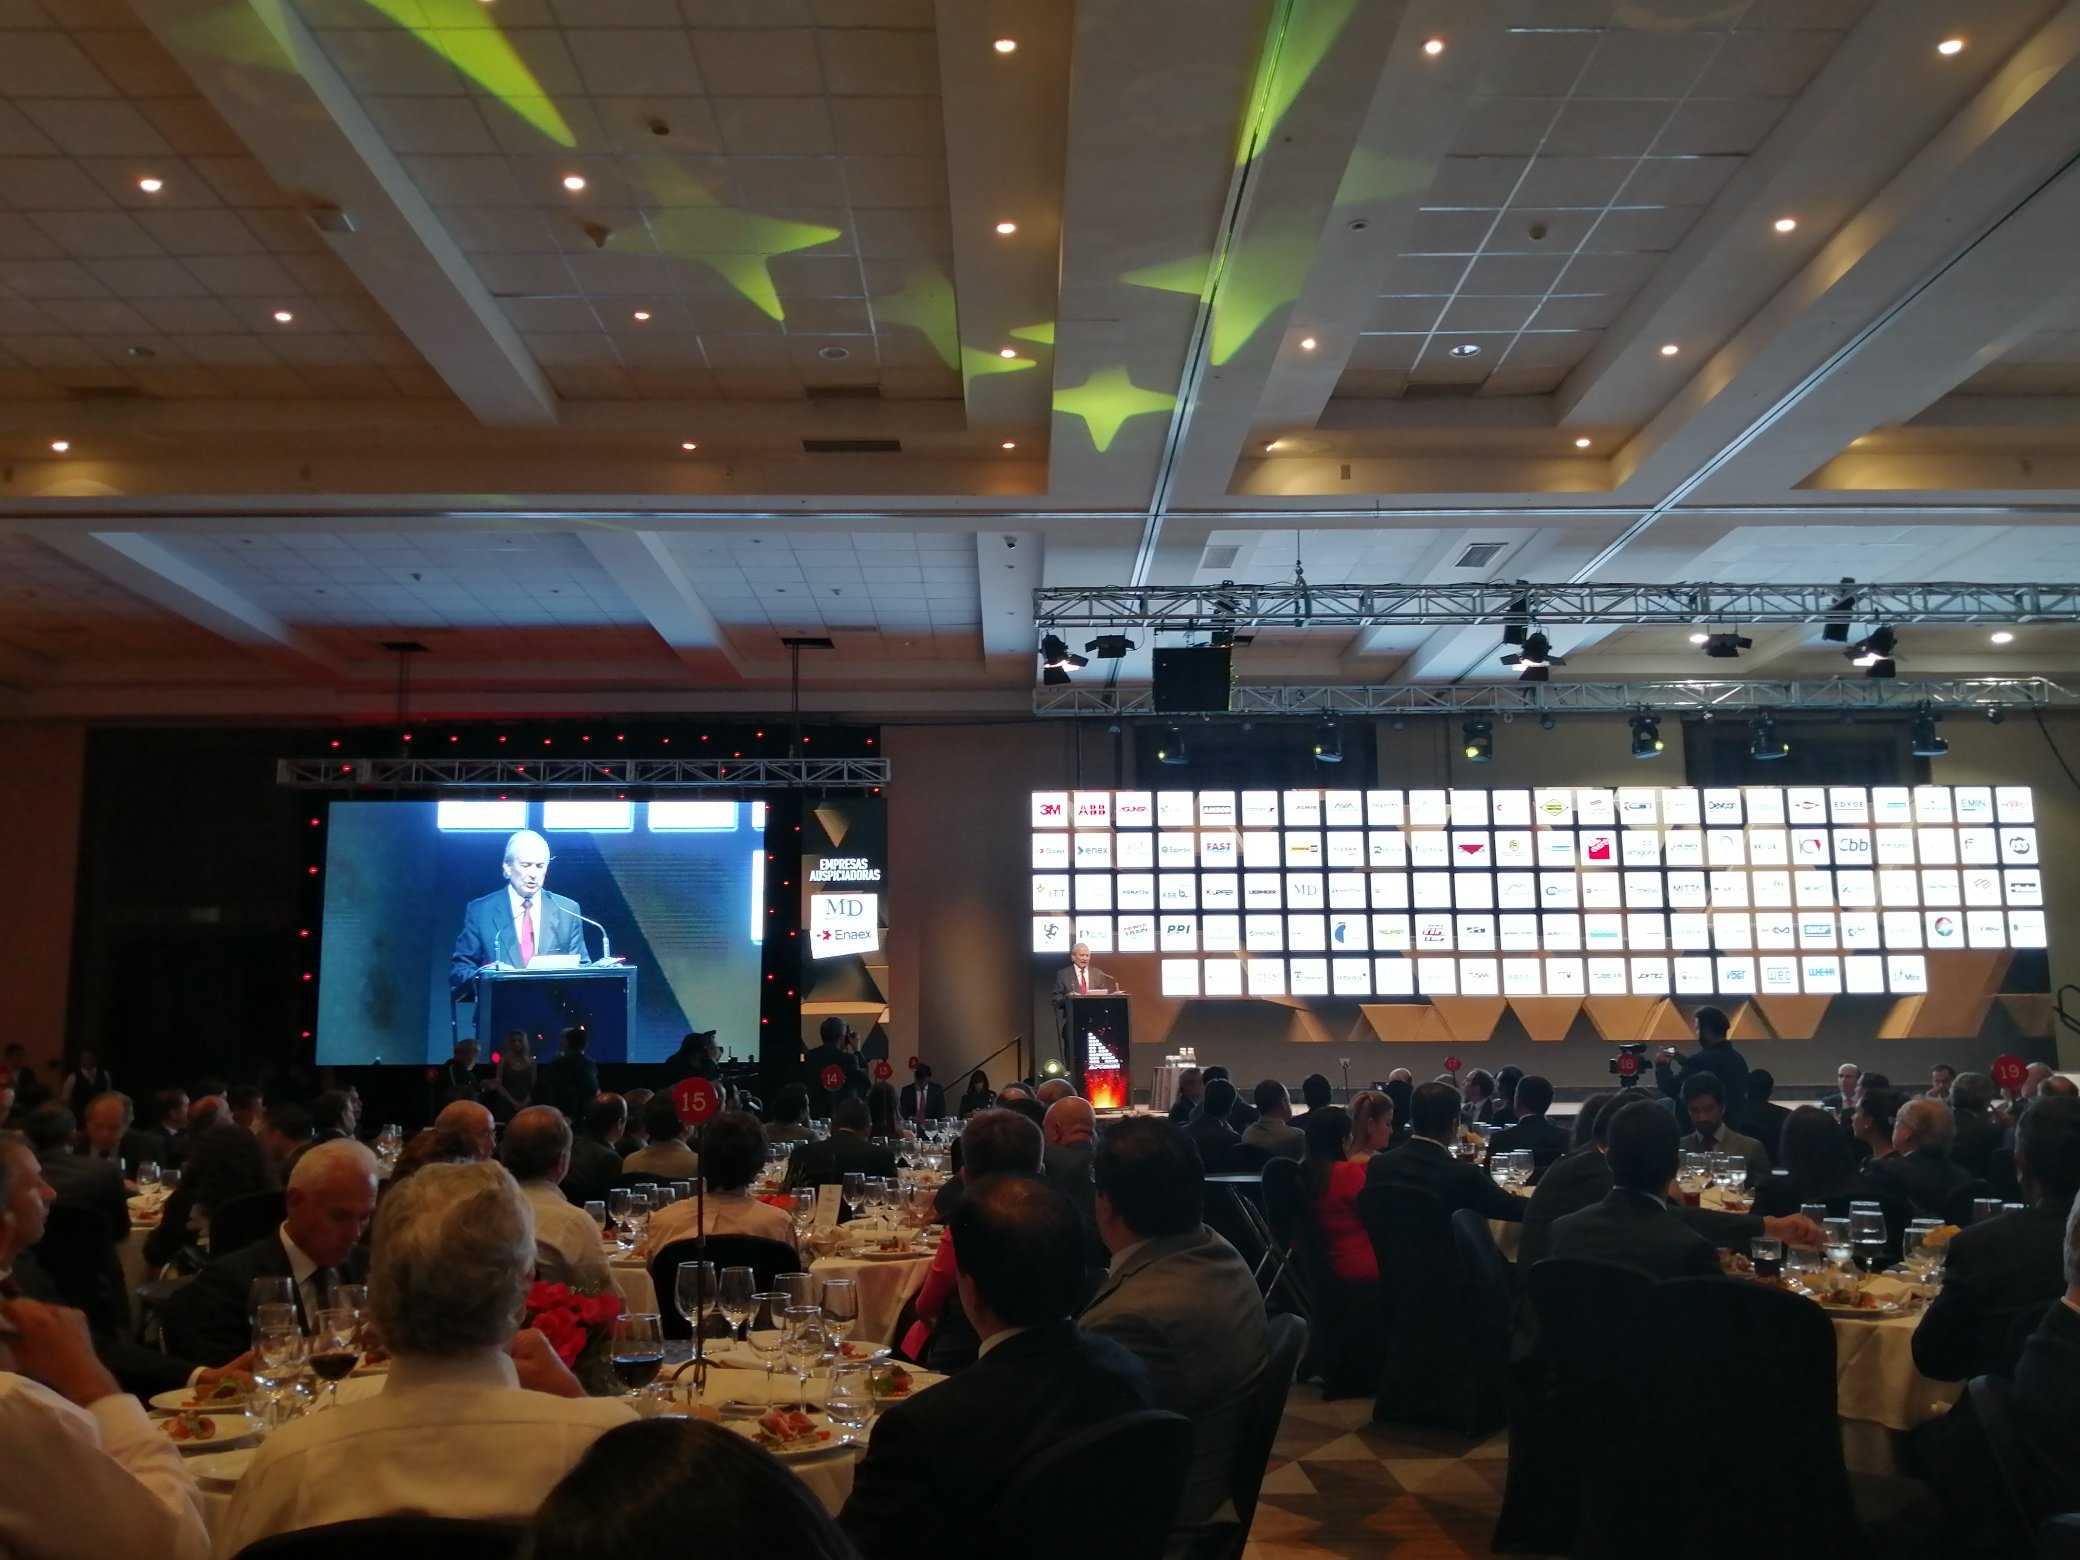 Chile mining leaders call for unity, sustainability